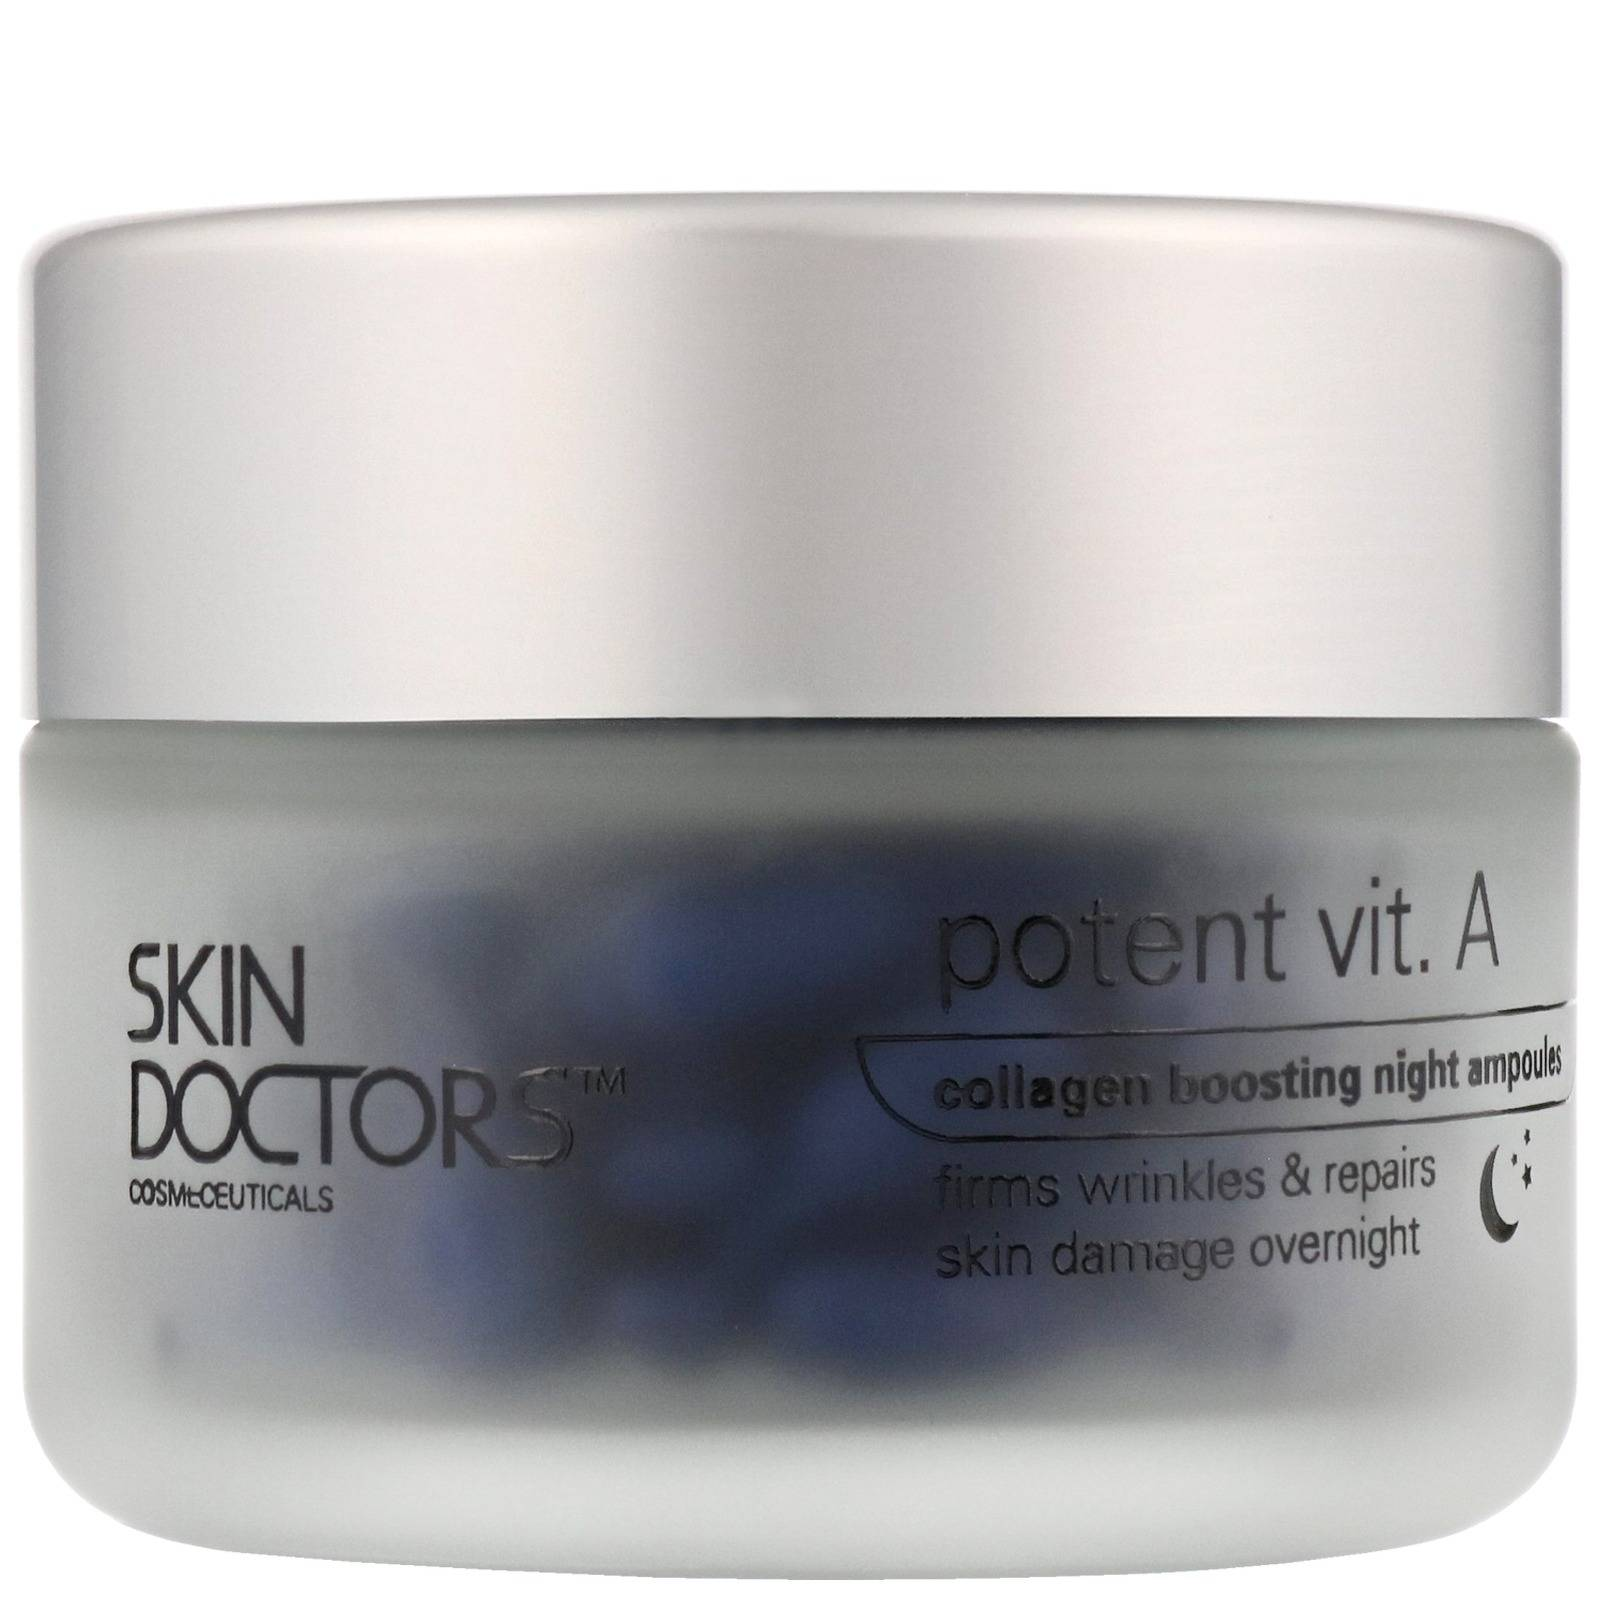 Skin Doctors Potent Vit. A: Collagen Boosting Night Ampoules x 50 for Women